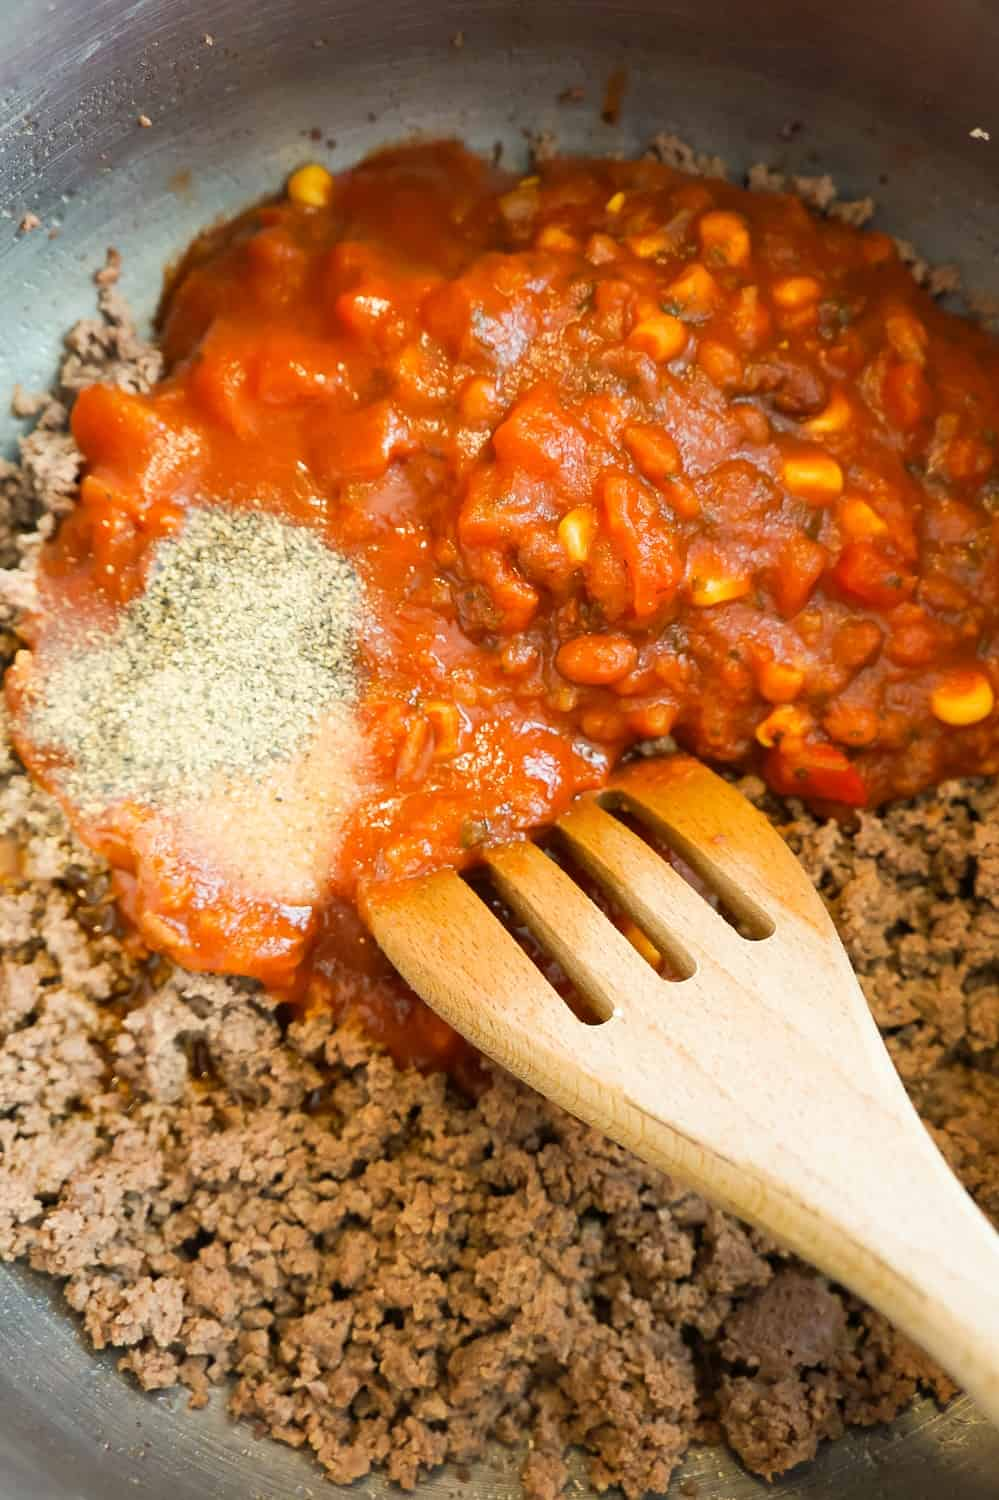 salsa and taco sauce poured over cooked ground beef in a pot